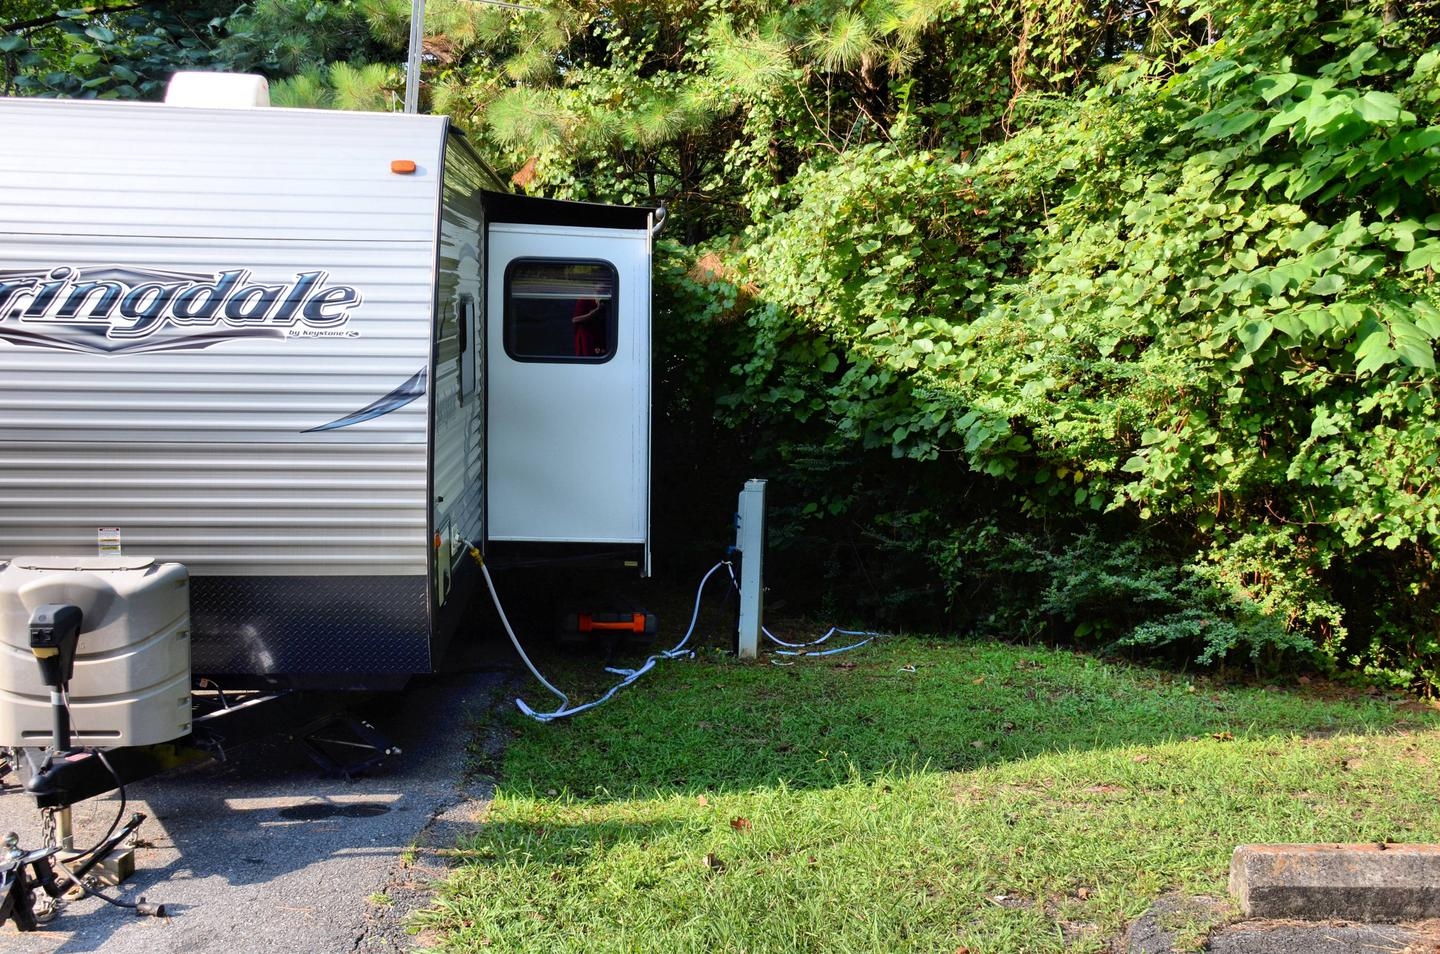 Utilities-side clearance.Payne Campground, campsite 14.